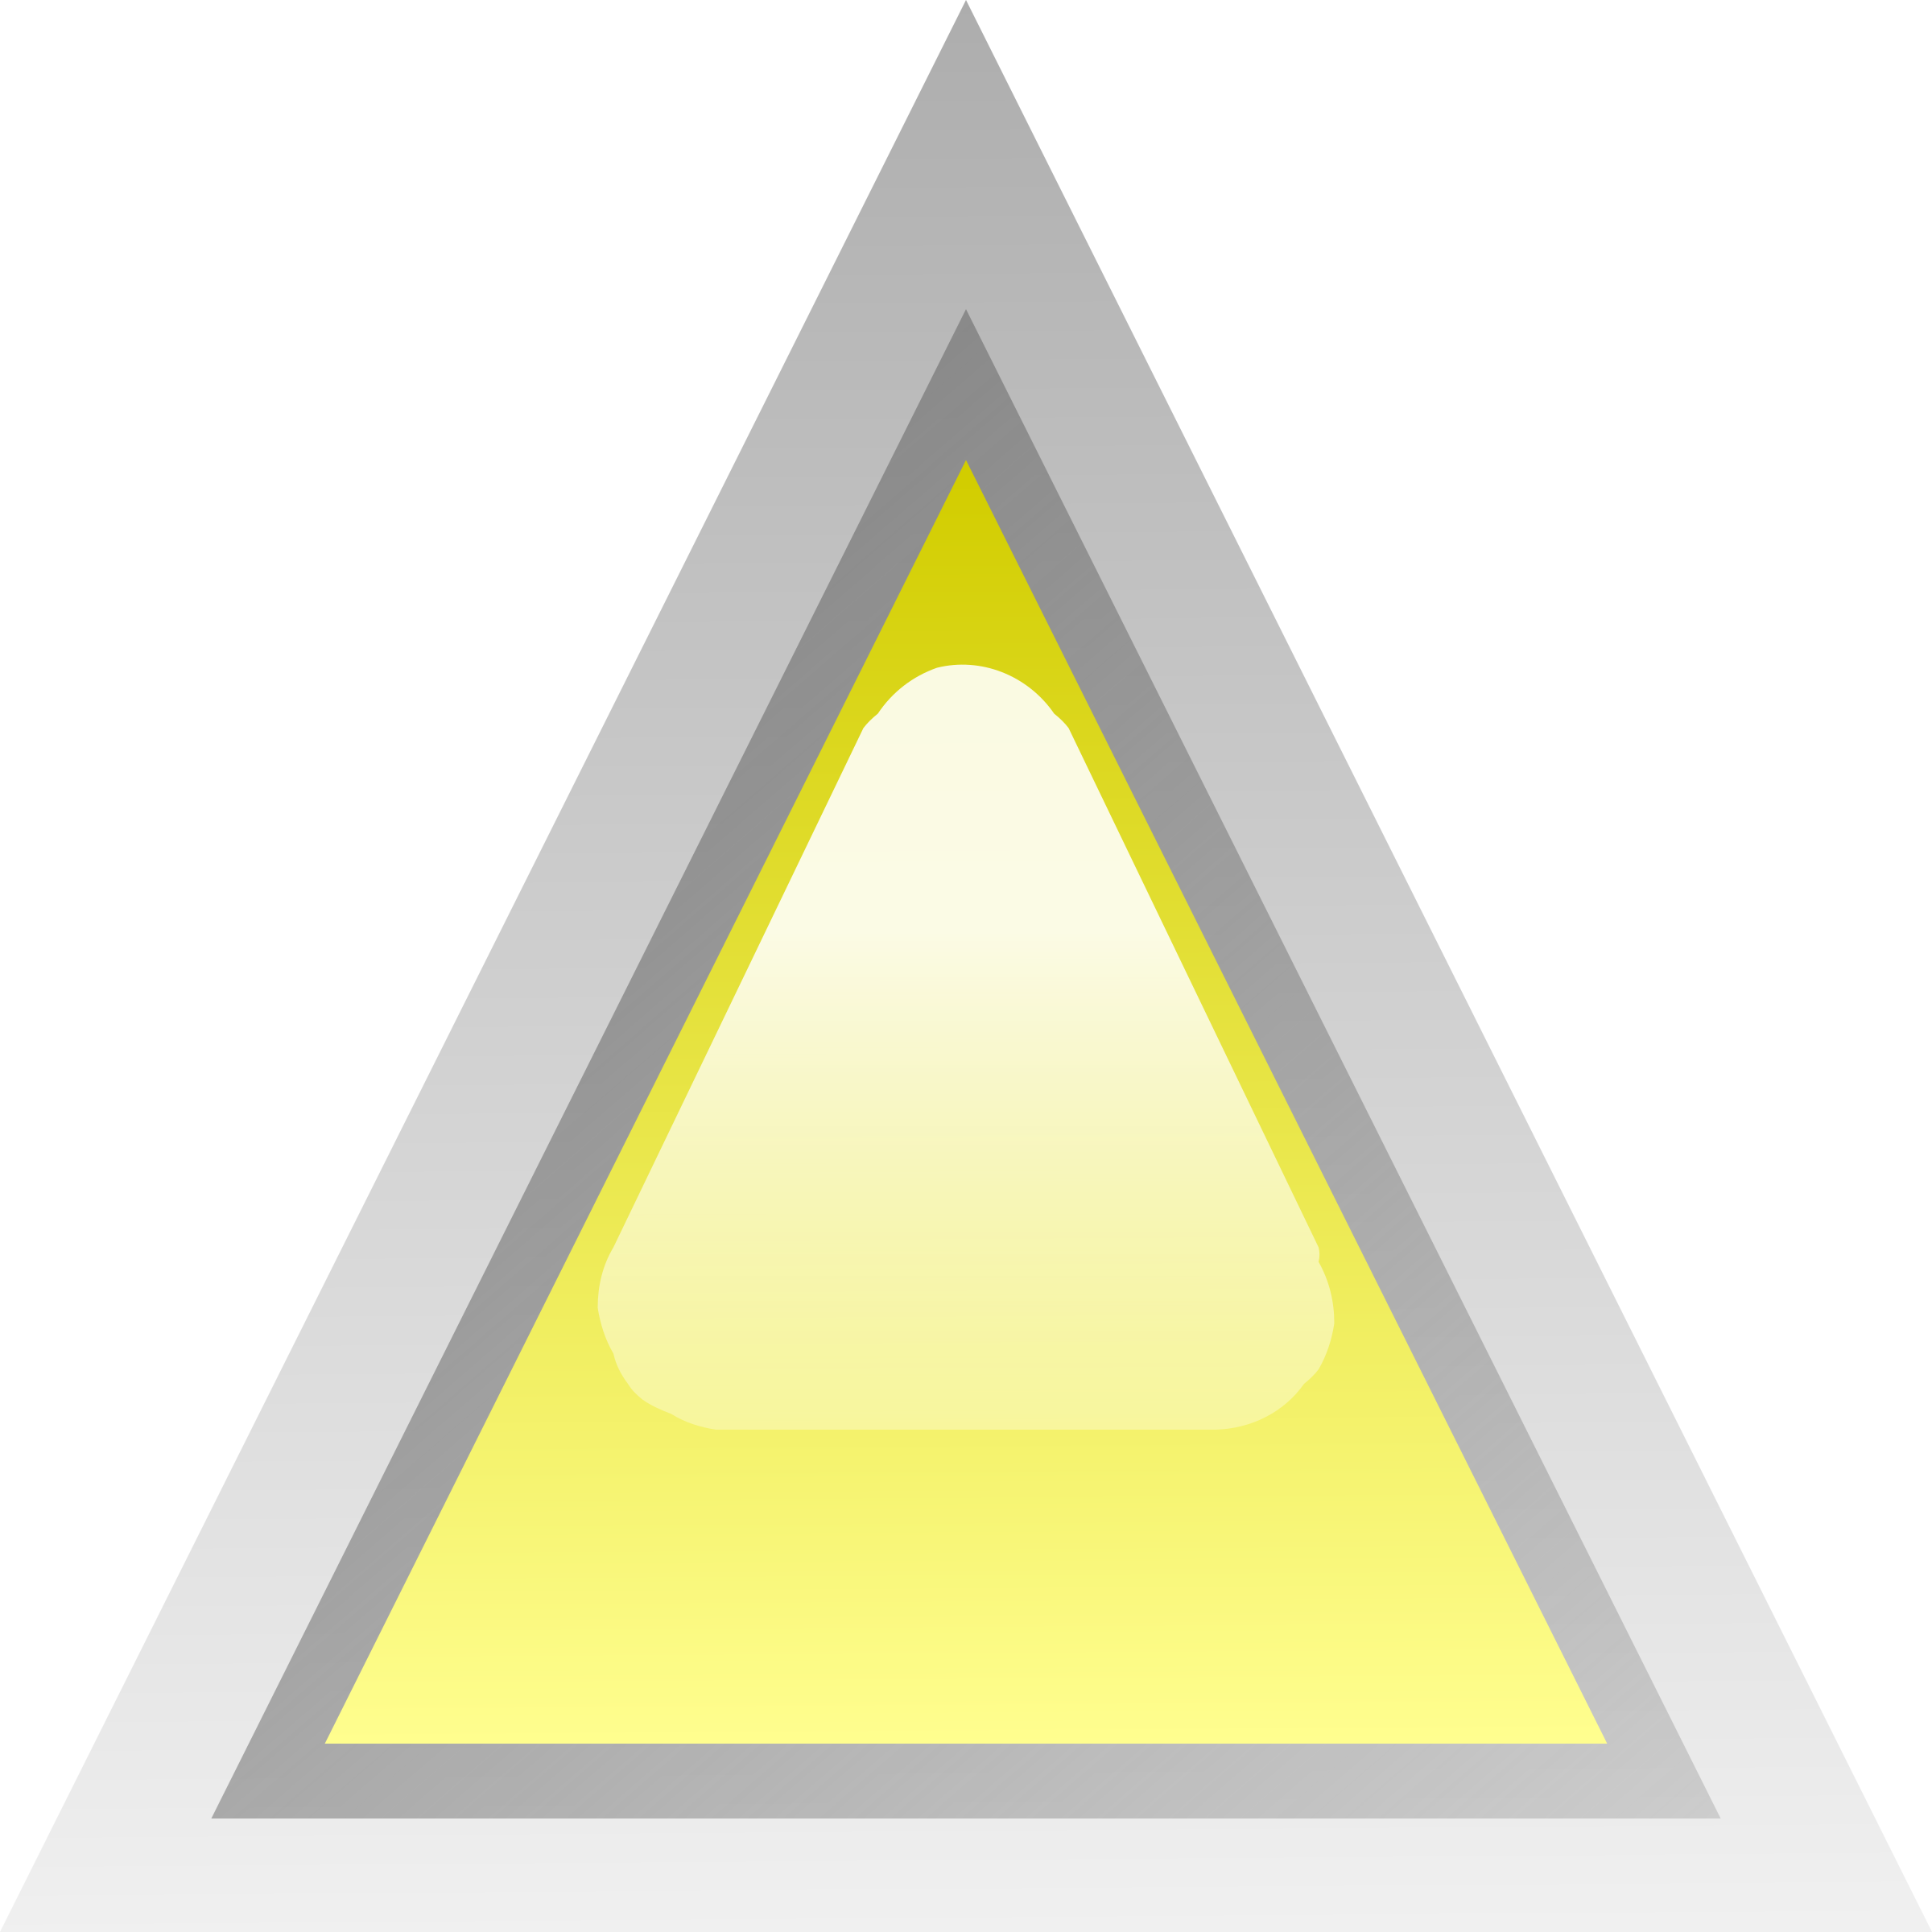 led triangular yellow by Anonymous